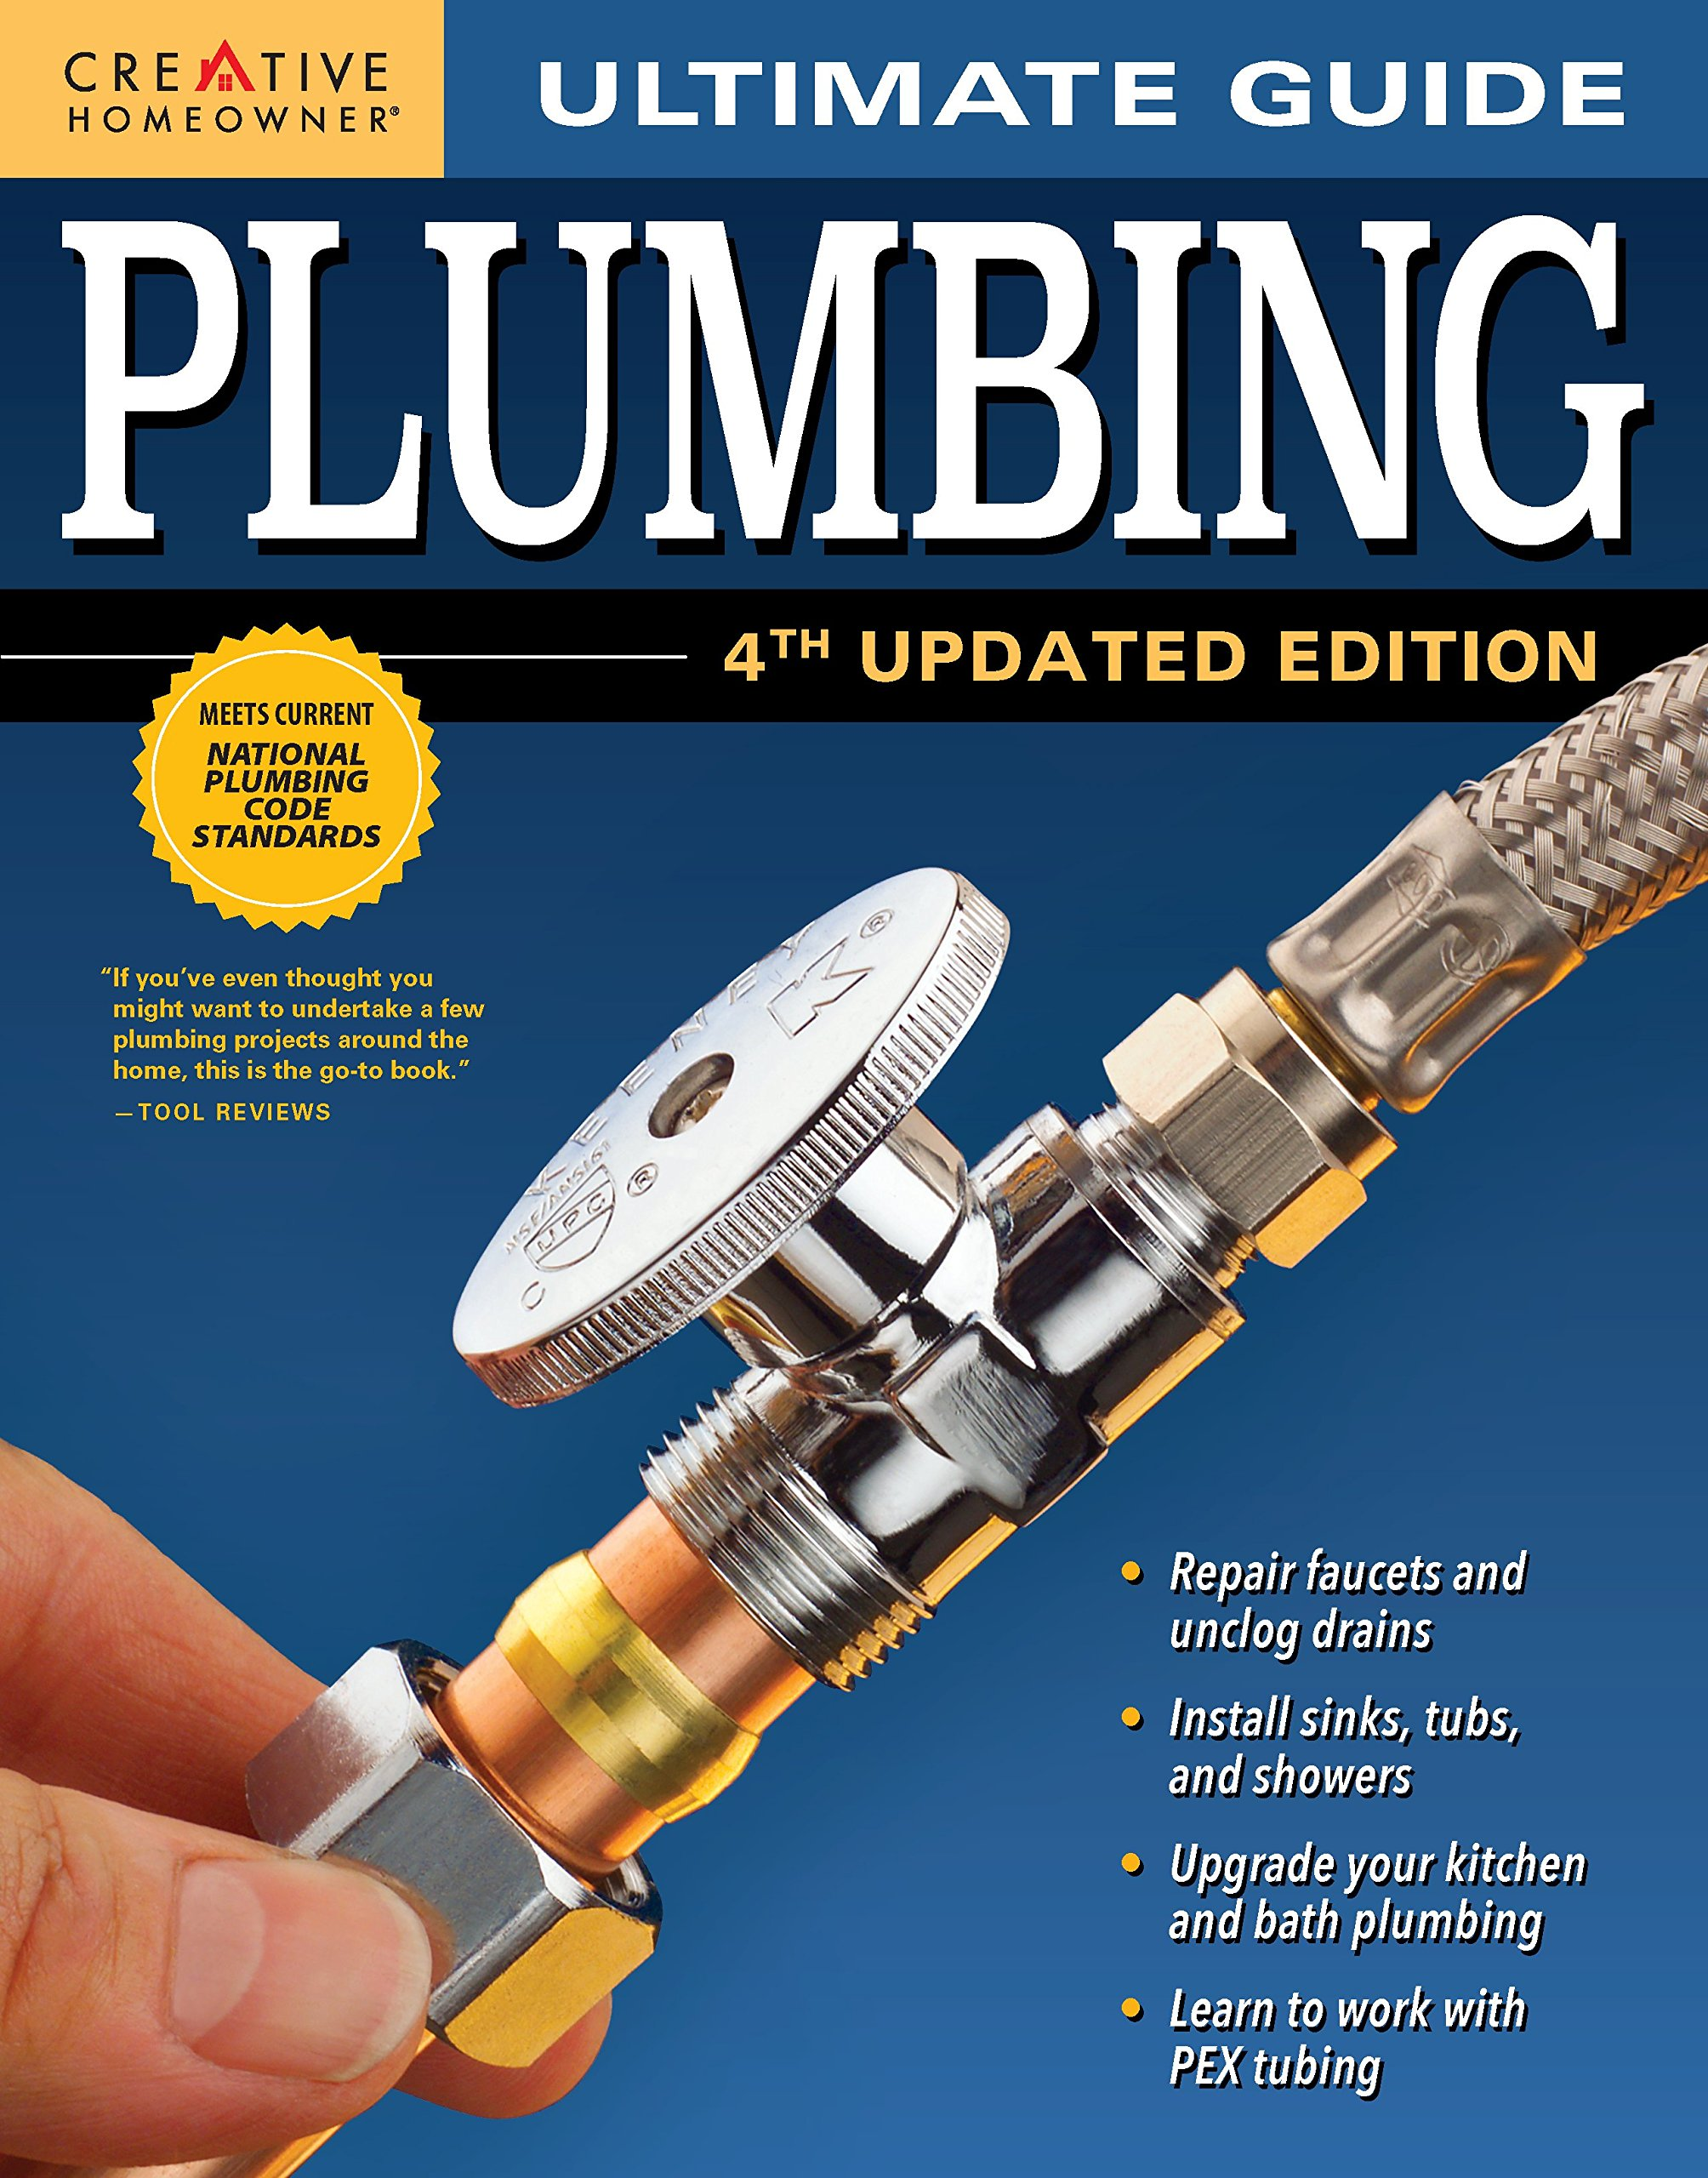 Ultimate guide plumbing 4th updated edition creative homeowner ultimate guide plumbing 4th updated edition creative homeowner 800 photos step by step projects and comprehensive how to information on up to date solutioingenieria Images